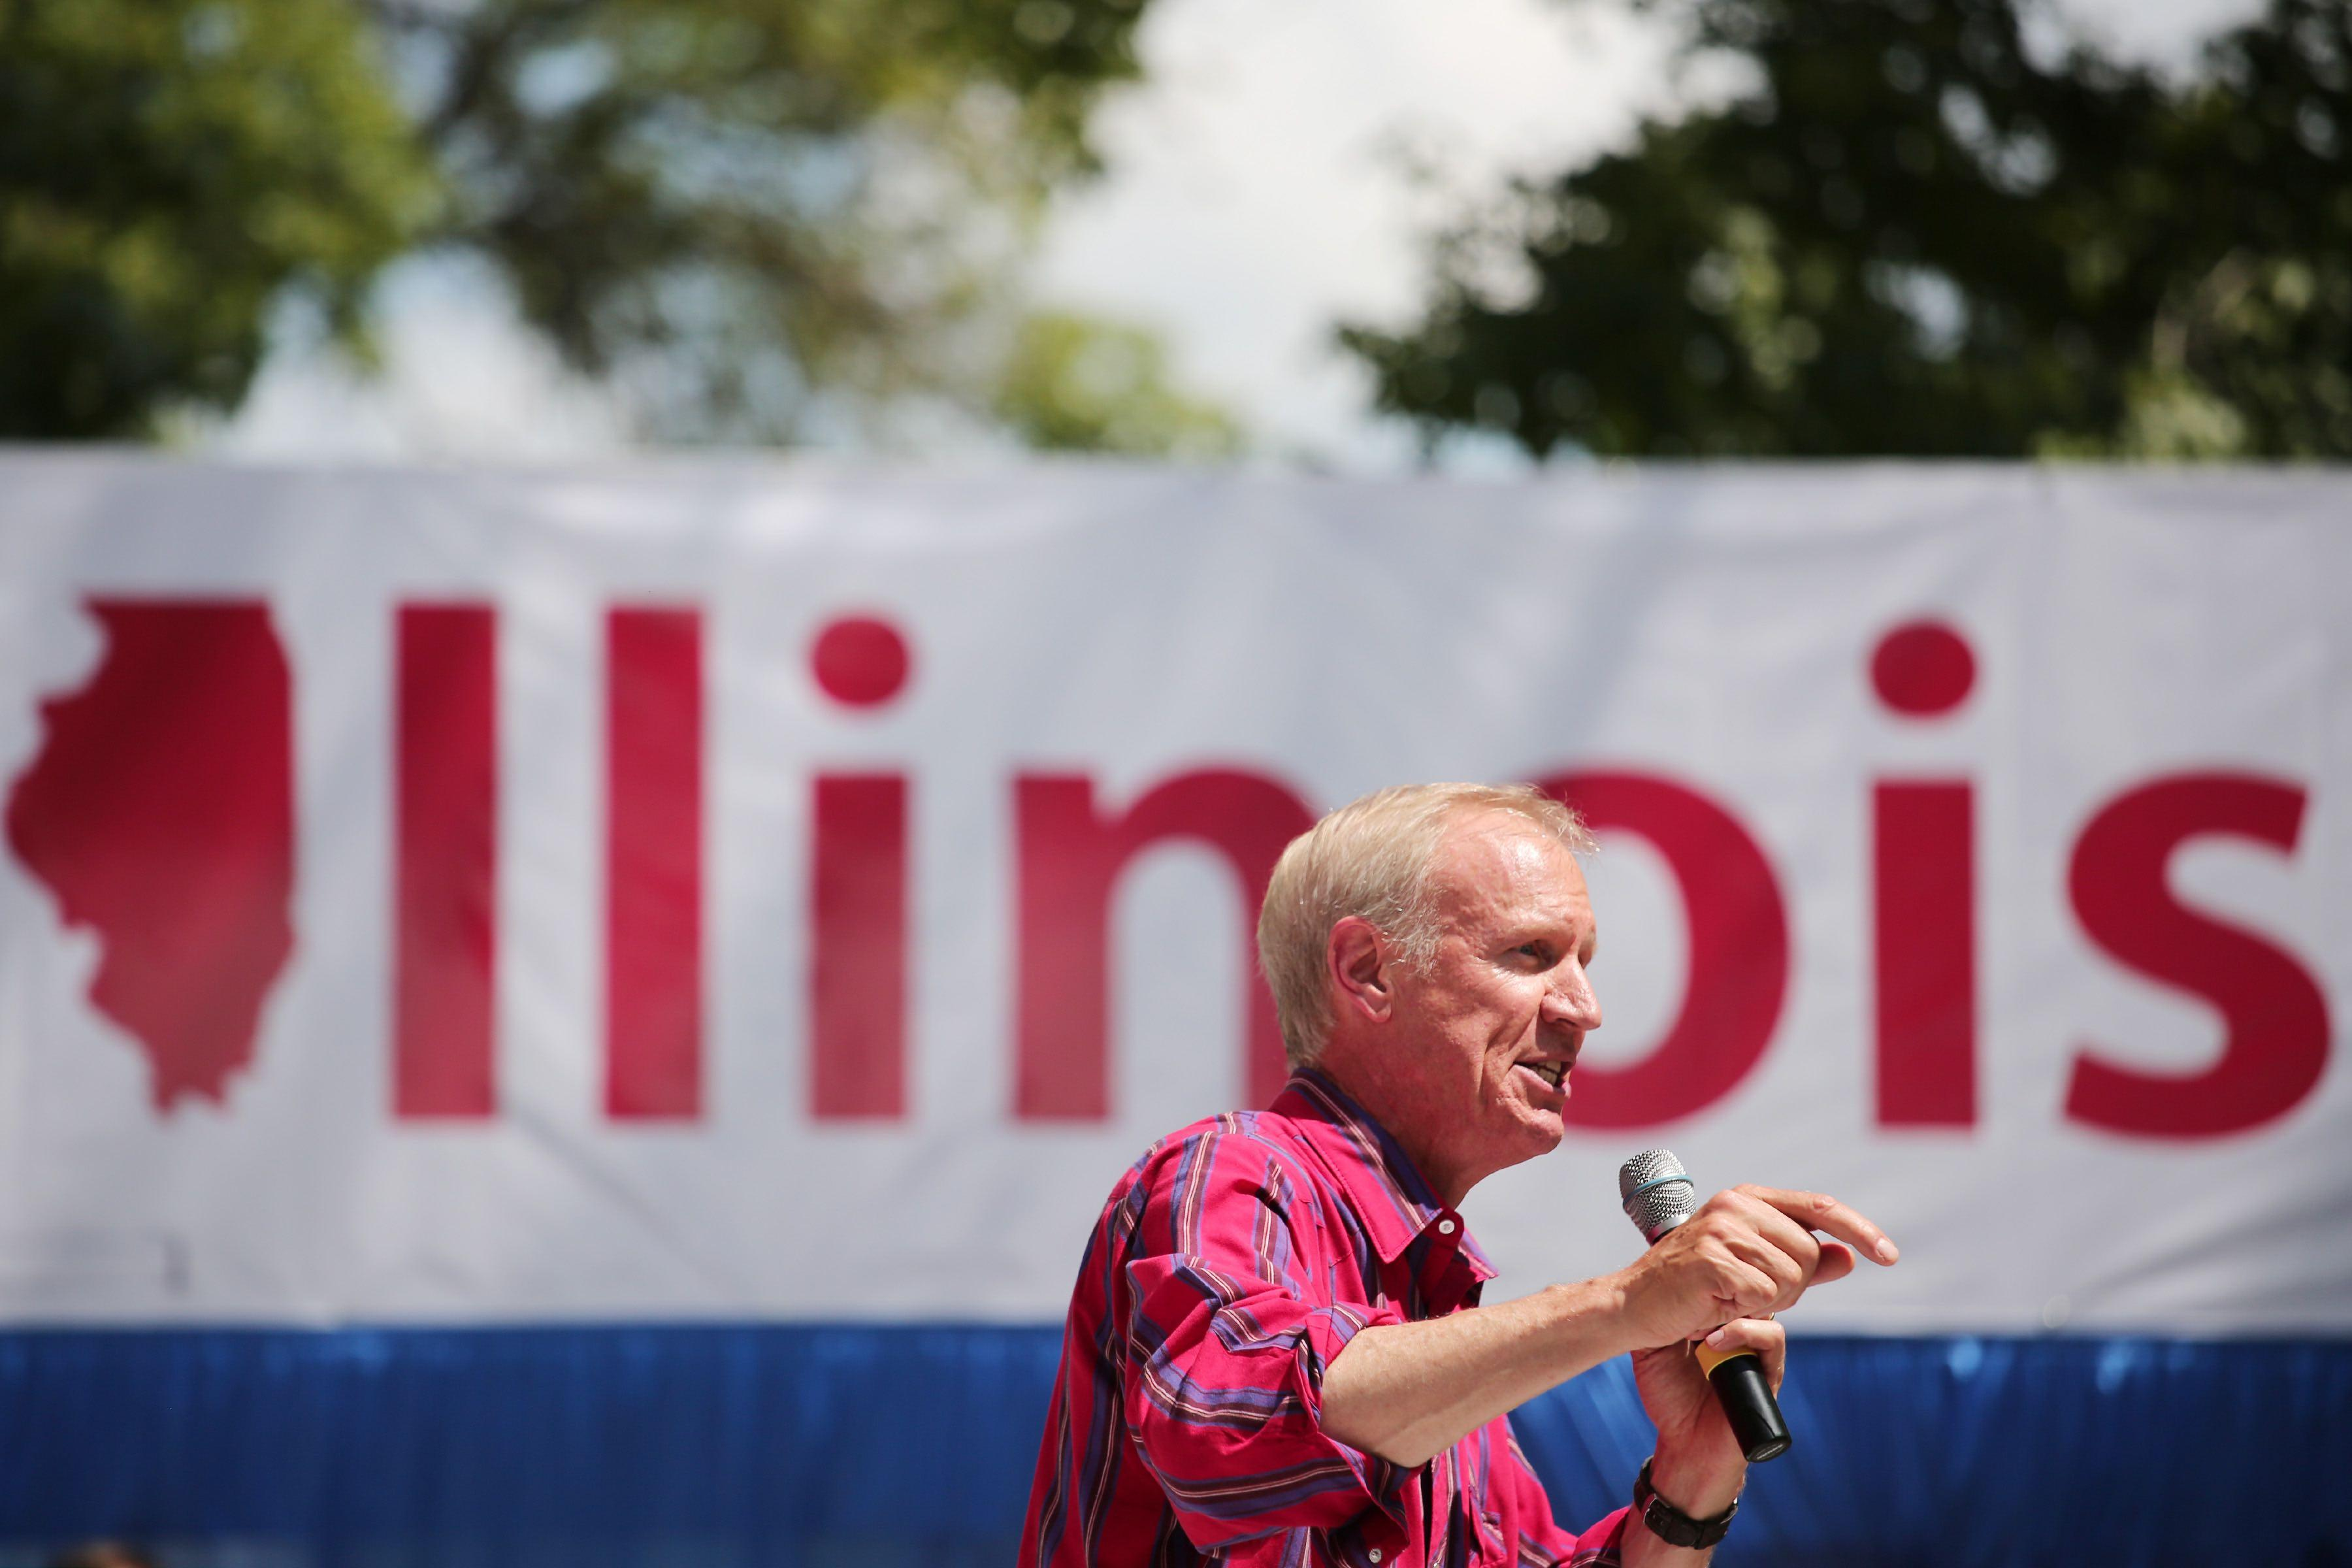 Illinois Gov. Bruce Rauner speaks at the Illinois State Fair in Springfield, Ill., on August 17, 2016. (Anthony Souffle | Chicago Tribune | TNS)